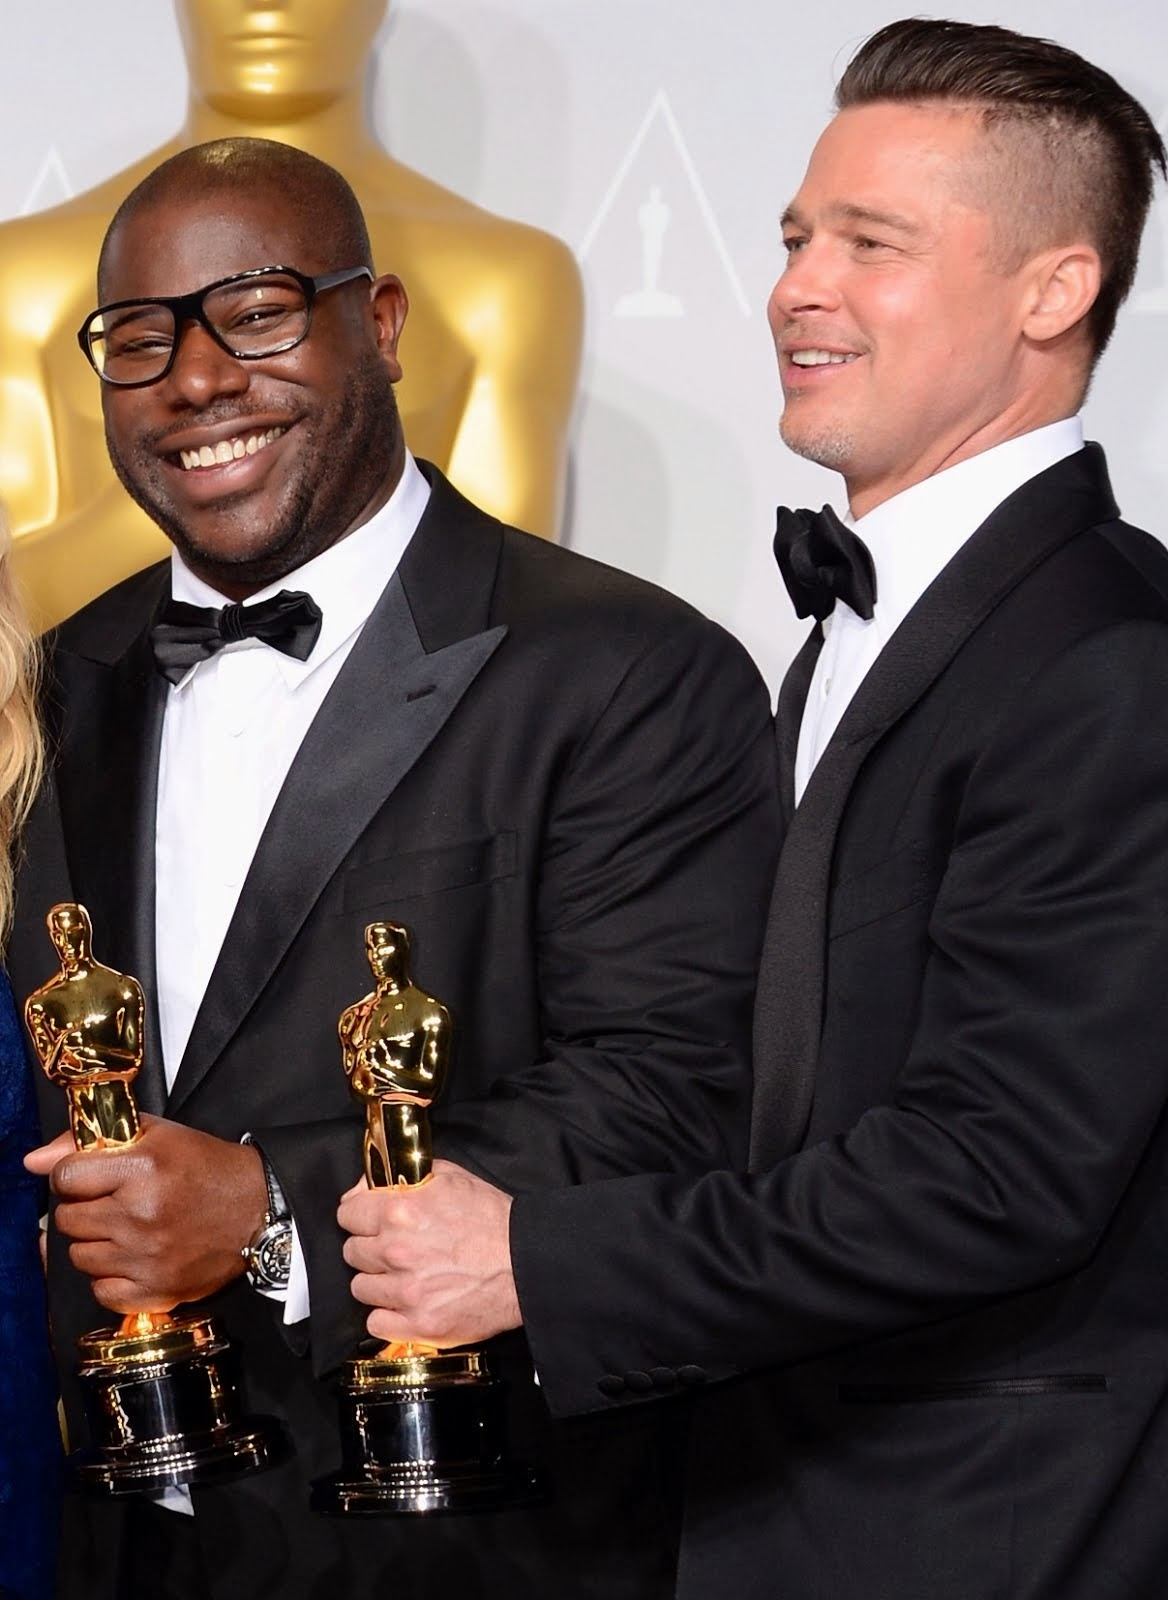 Steve McQueen's Montblanc Nicolas Rieussec Open Hometime timepiece - 86th Annual Academy Awards